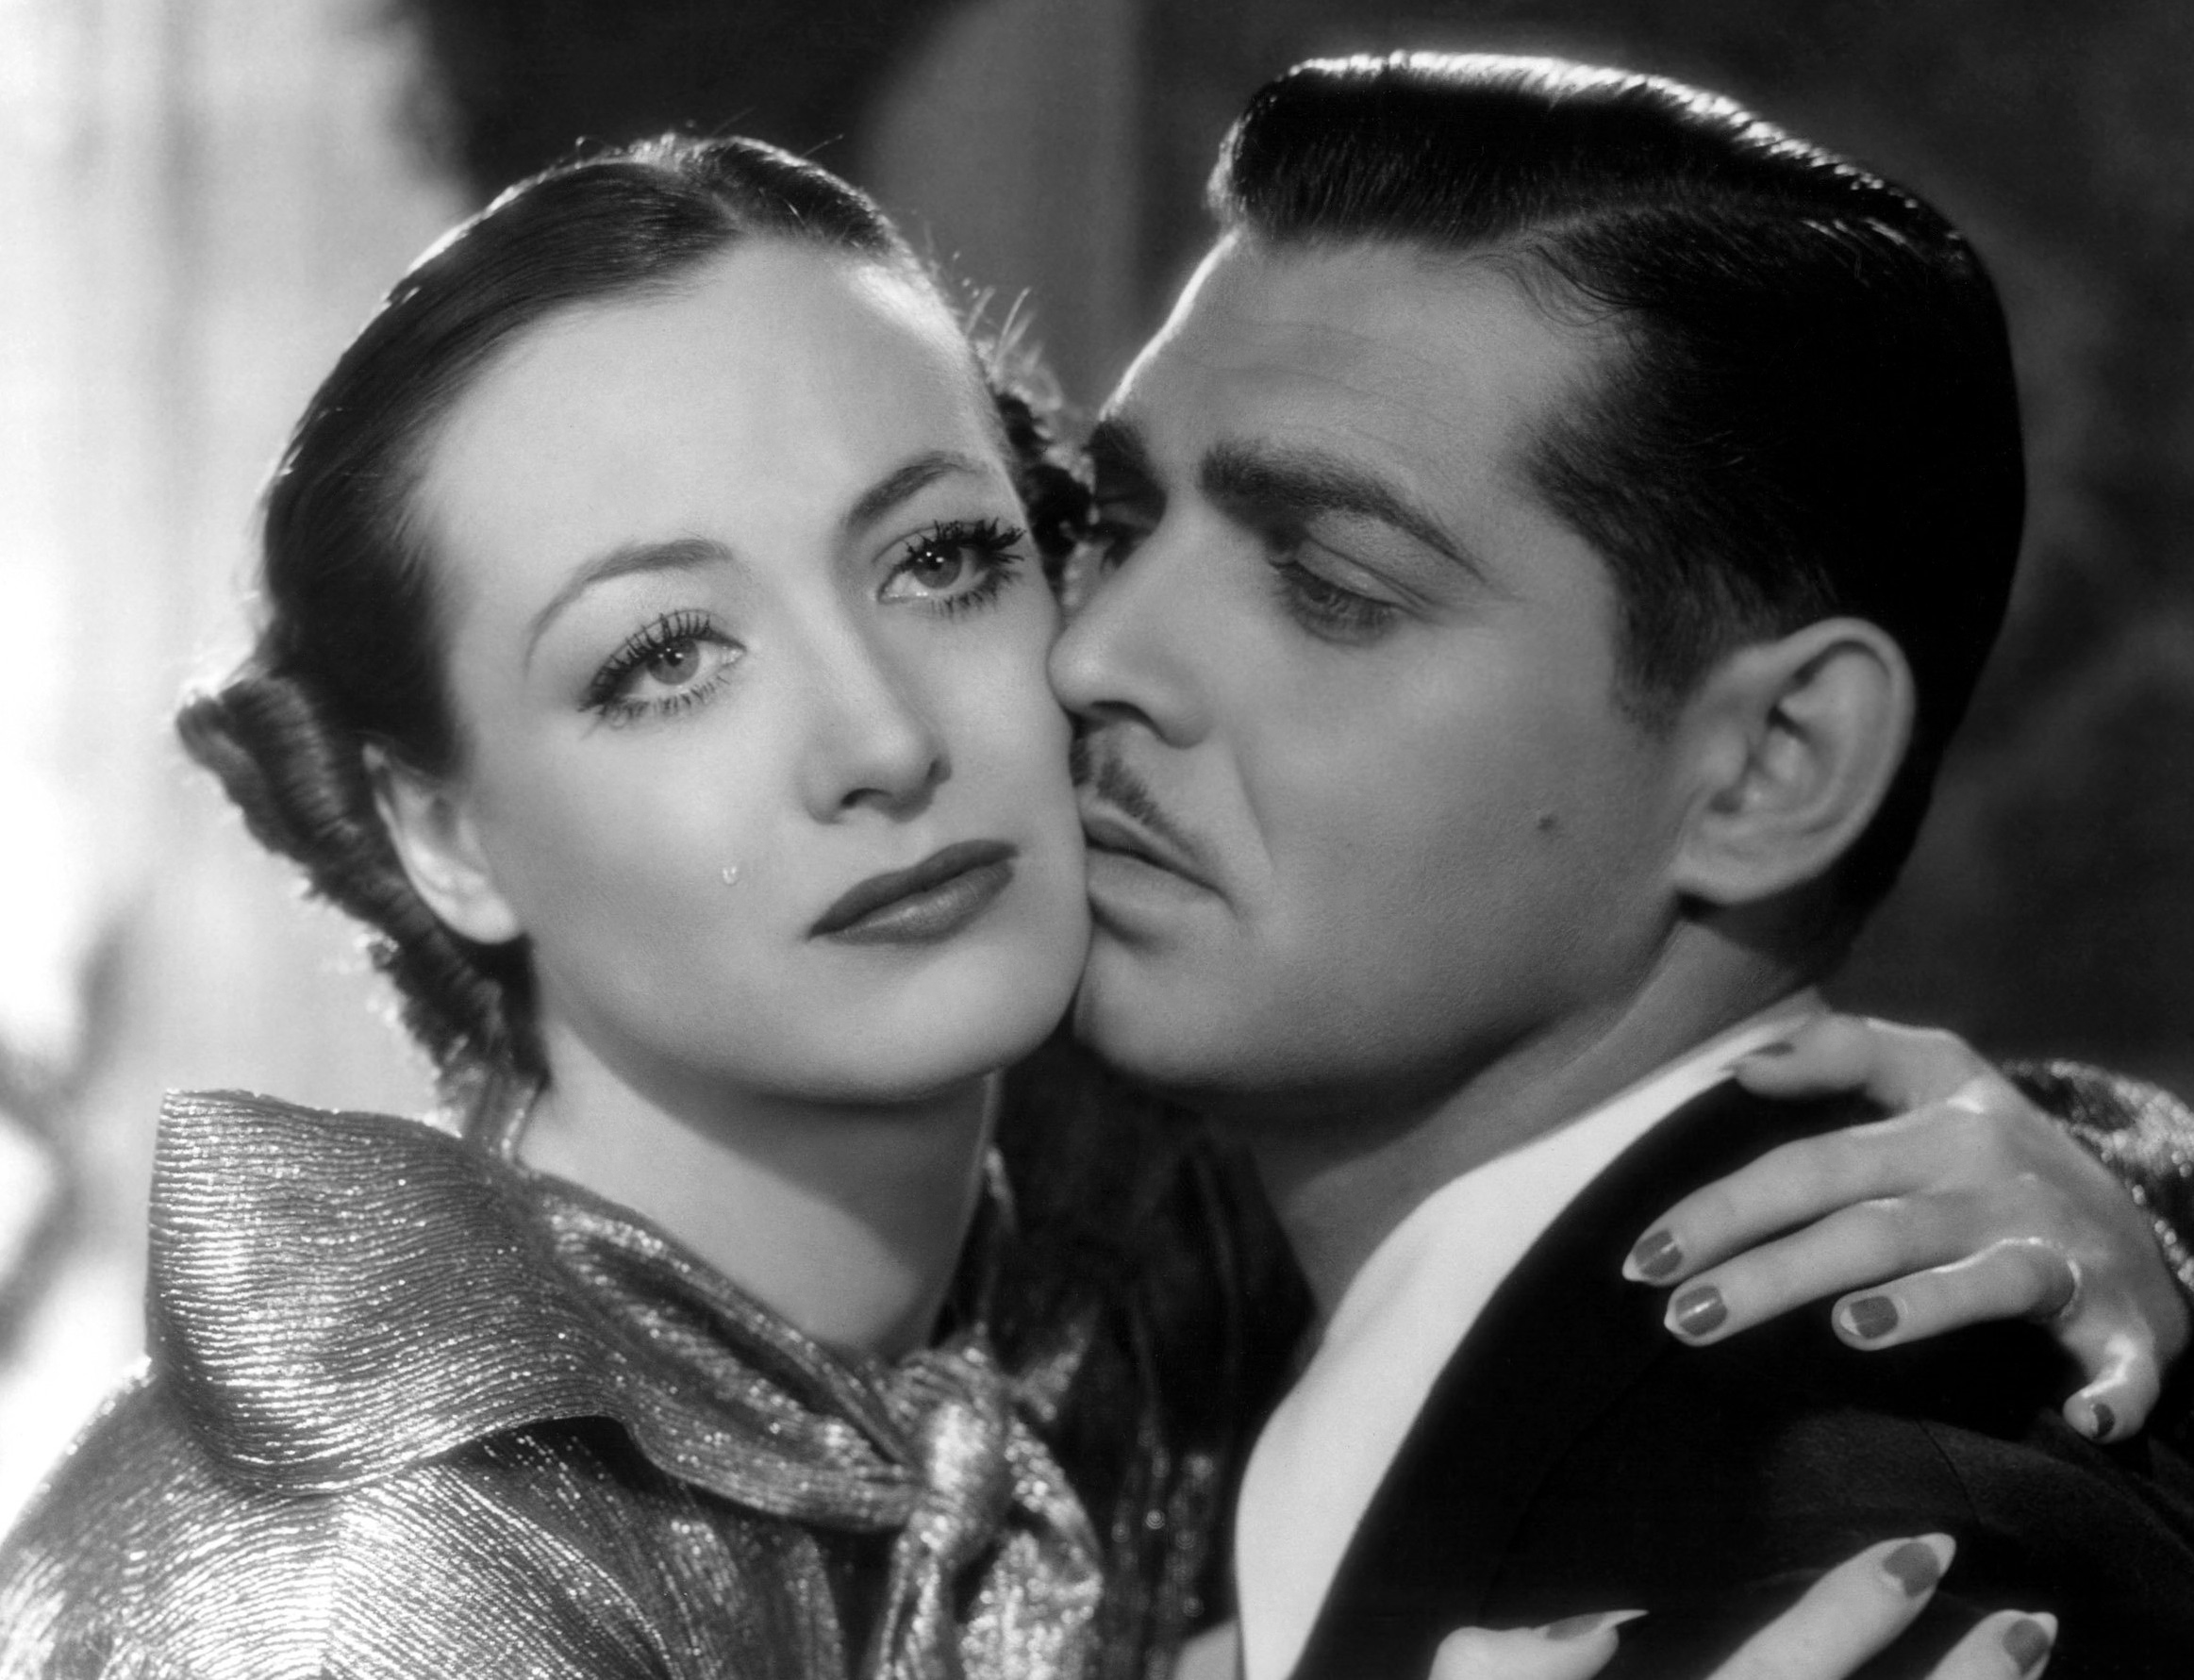 Joan Crawford and Clark Gable in 1934's Chained...her 9th biggest box office hit.